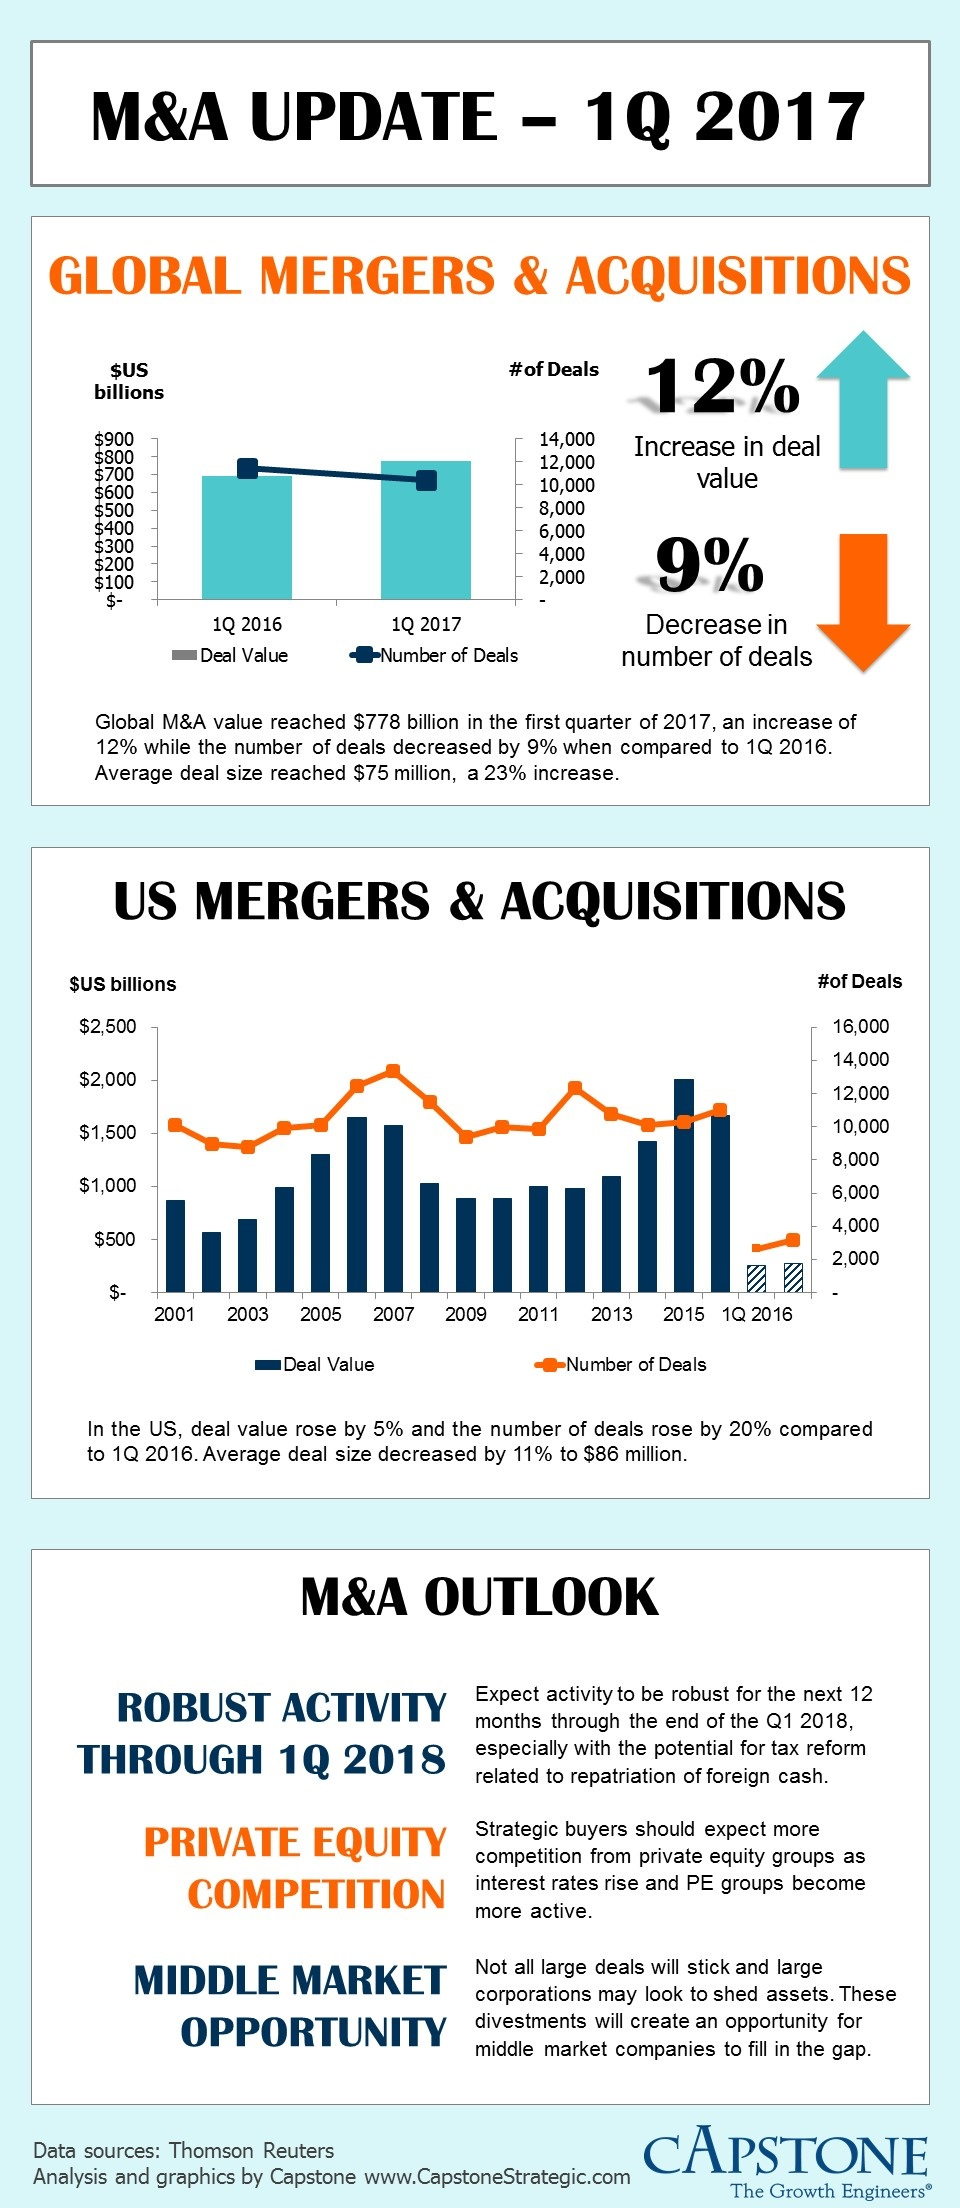 M&A Update 1Q 2017 - Capstone Strategic